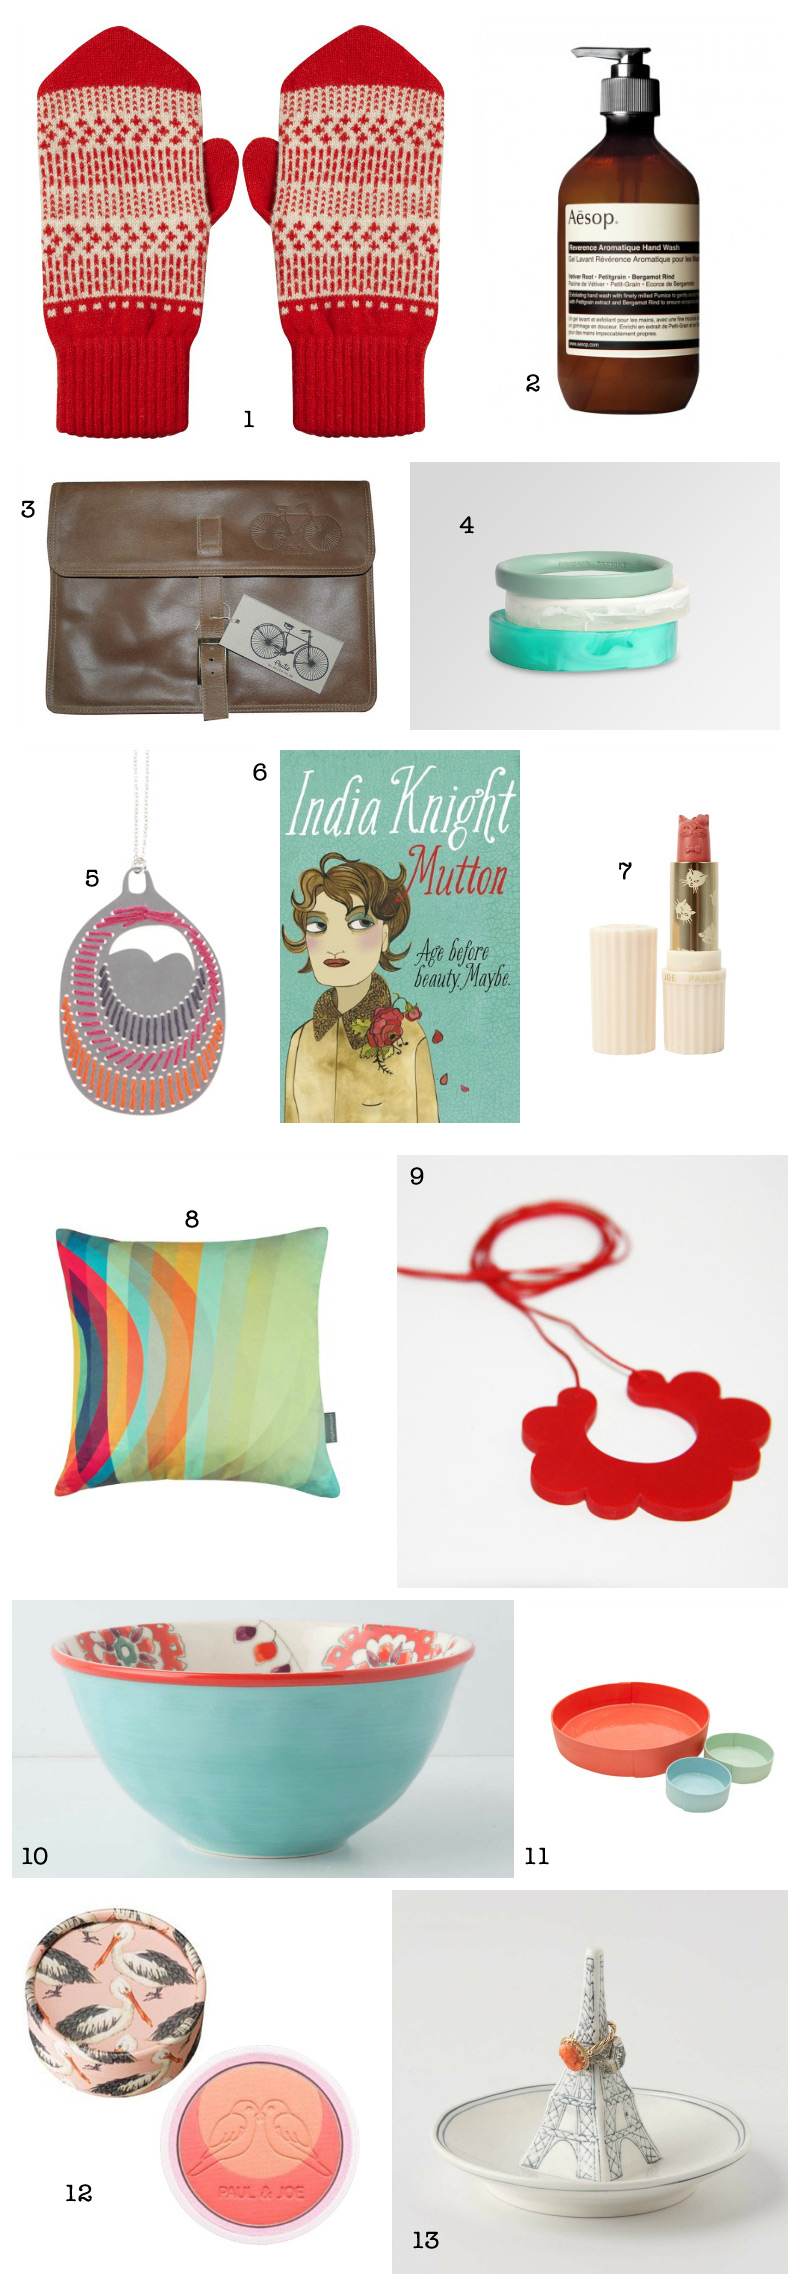 Christmas Gift Guide: Presents for mums, sisters and girlfriends